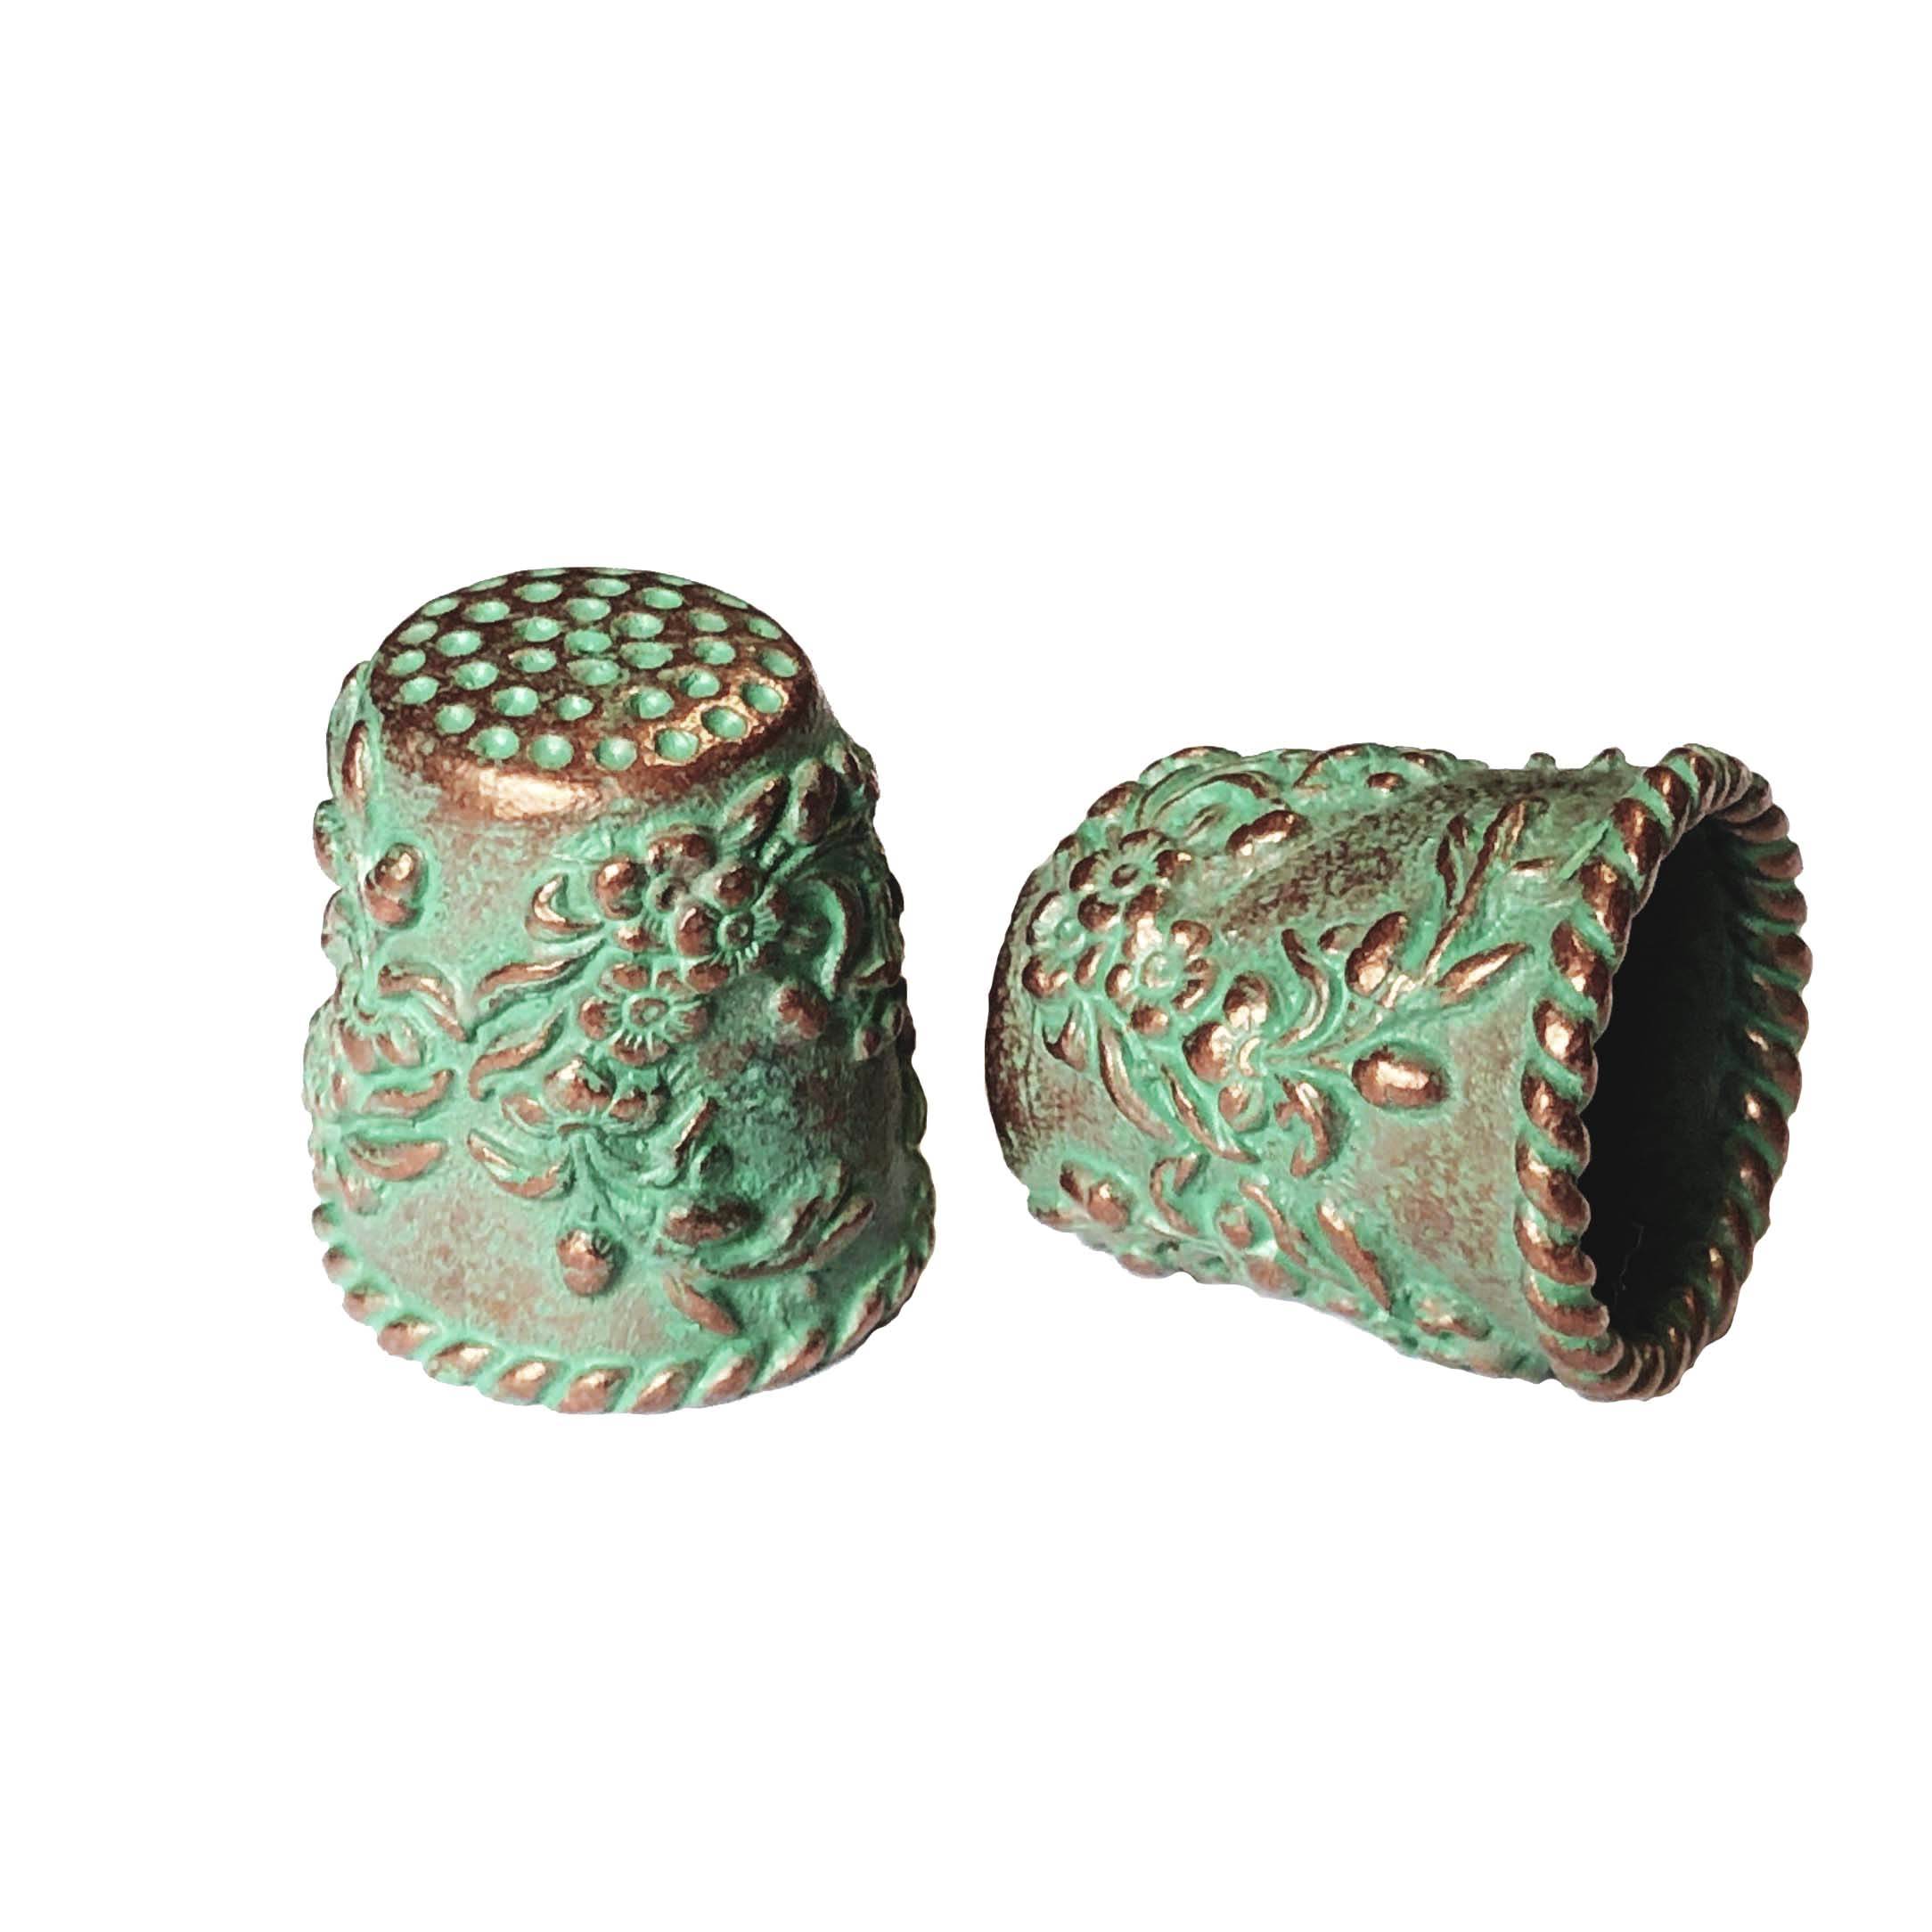 large floral thimble, thimble, floral rope design, vintage pewter castings, B'sue by 1928, floral, nickel free, lead free pewter, weathered copper, US made, green patina,  vintage jewelry supplies, 1928 Jewelry, B'sue Boutiques, vintage style, 0283